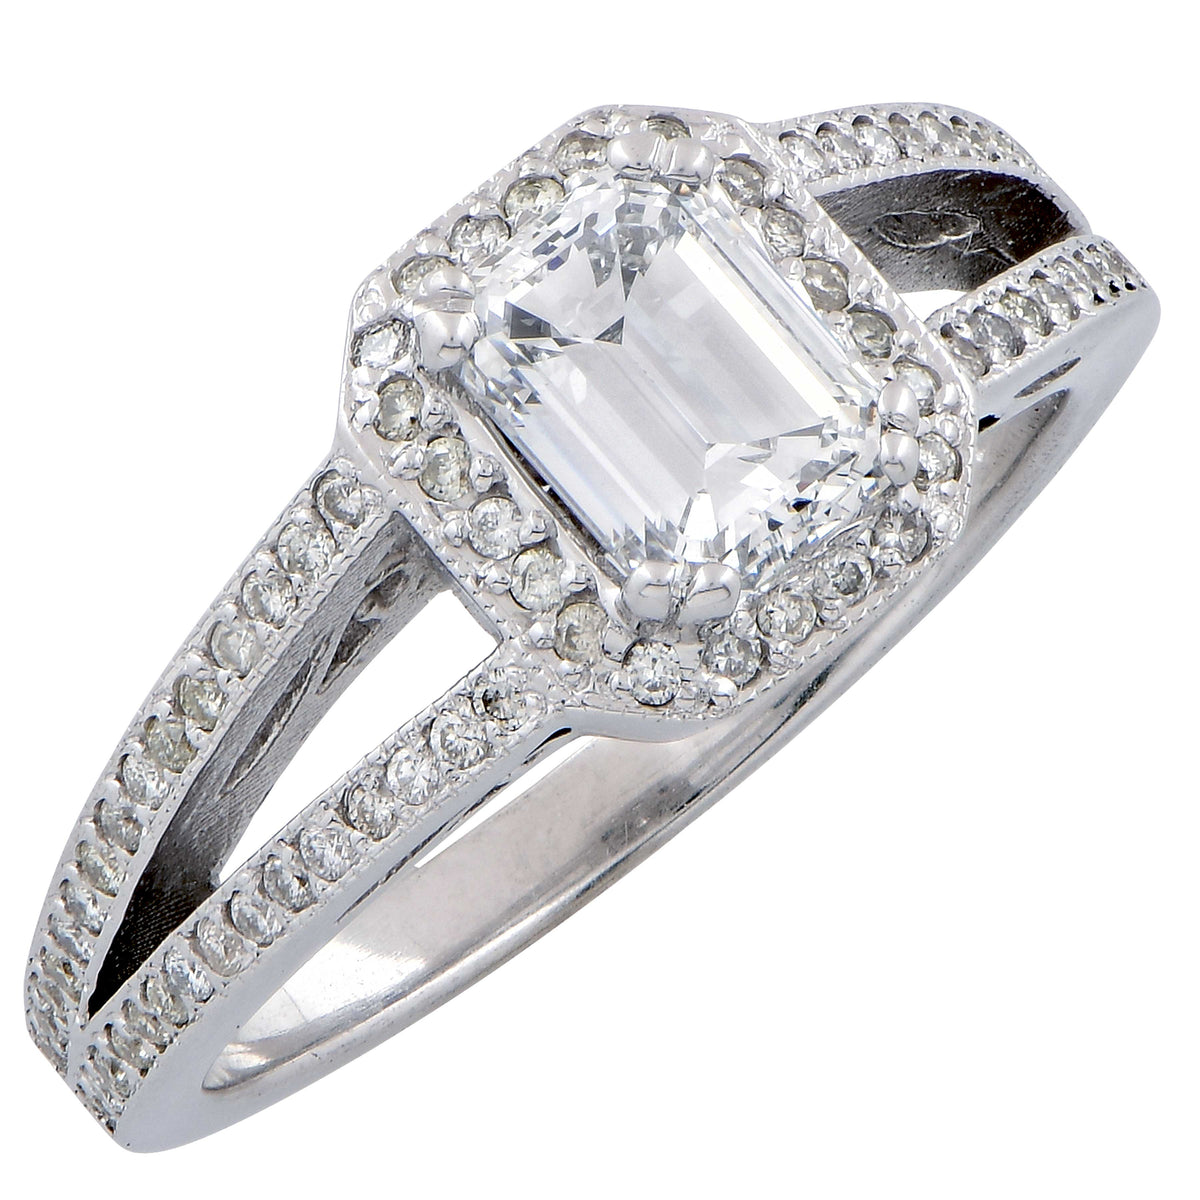 1.01 Carat GIA Graded D VVS2 Emerald Cut Diamond in 18 Karat White Gold Ring